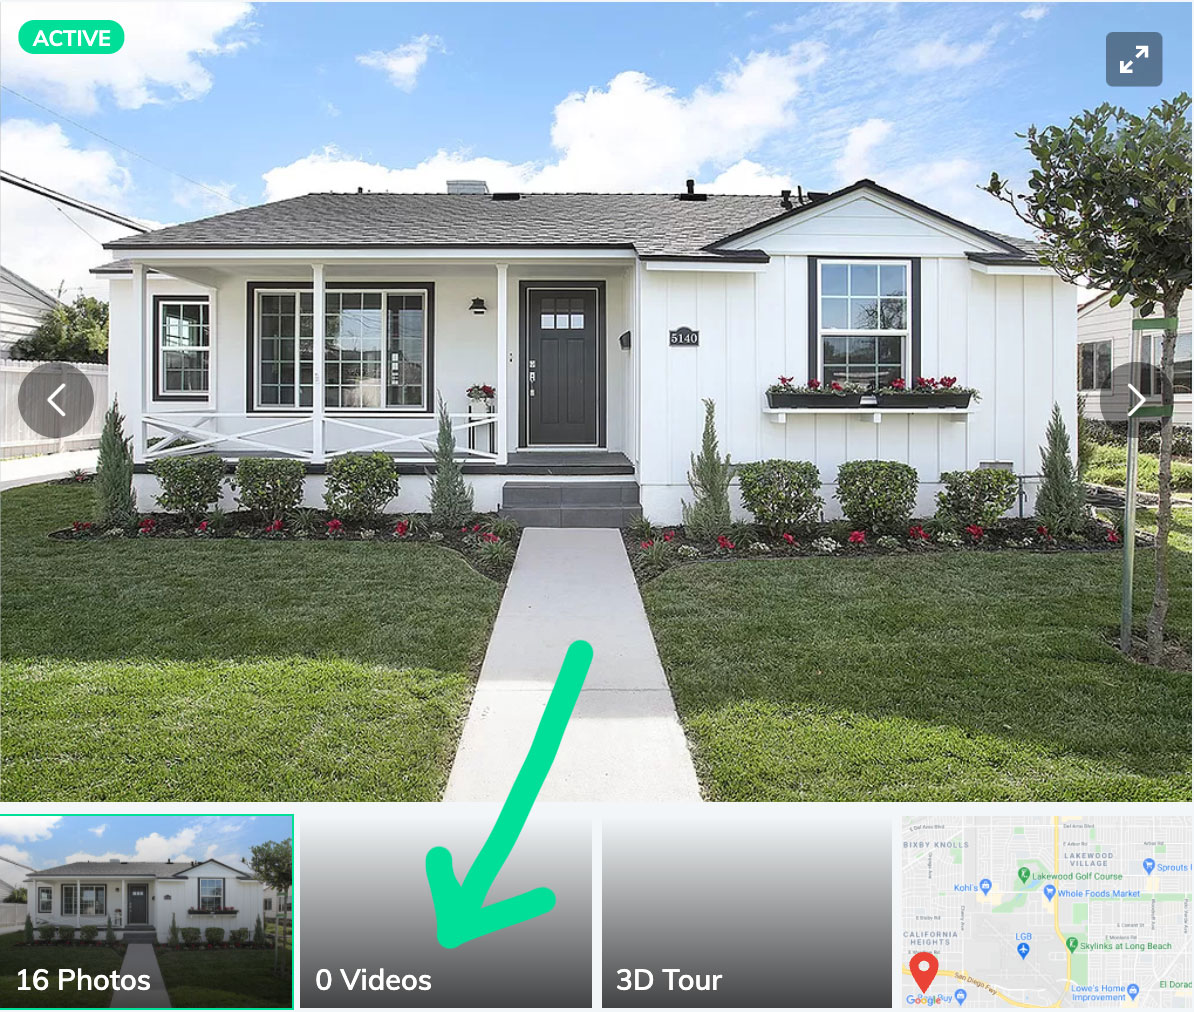 A real estate listing showing where you can display video